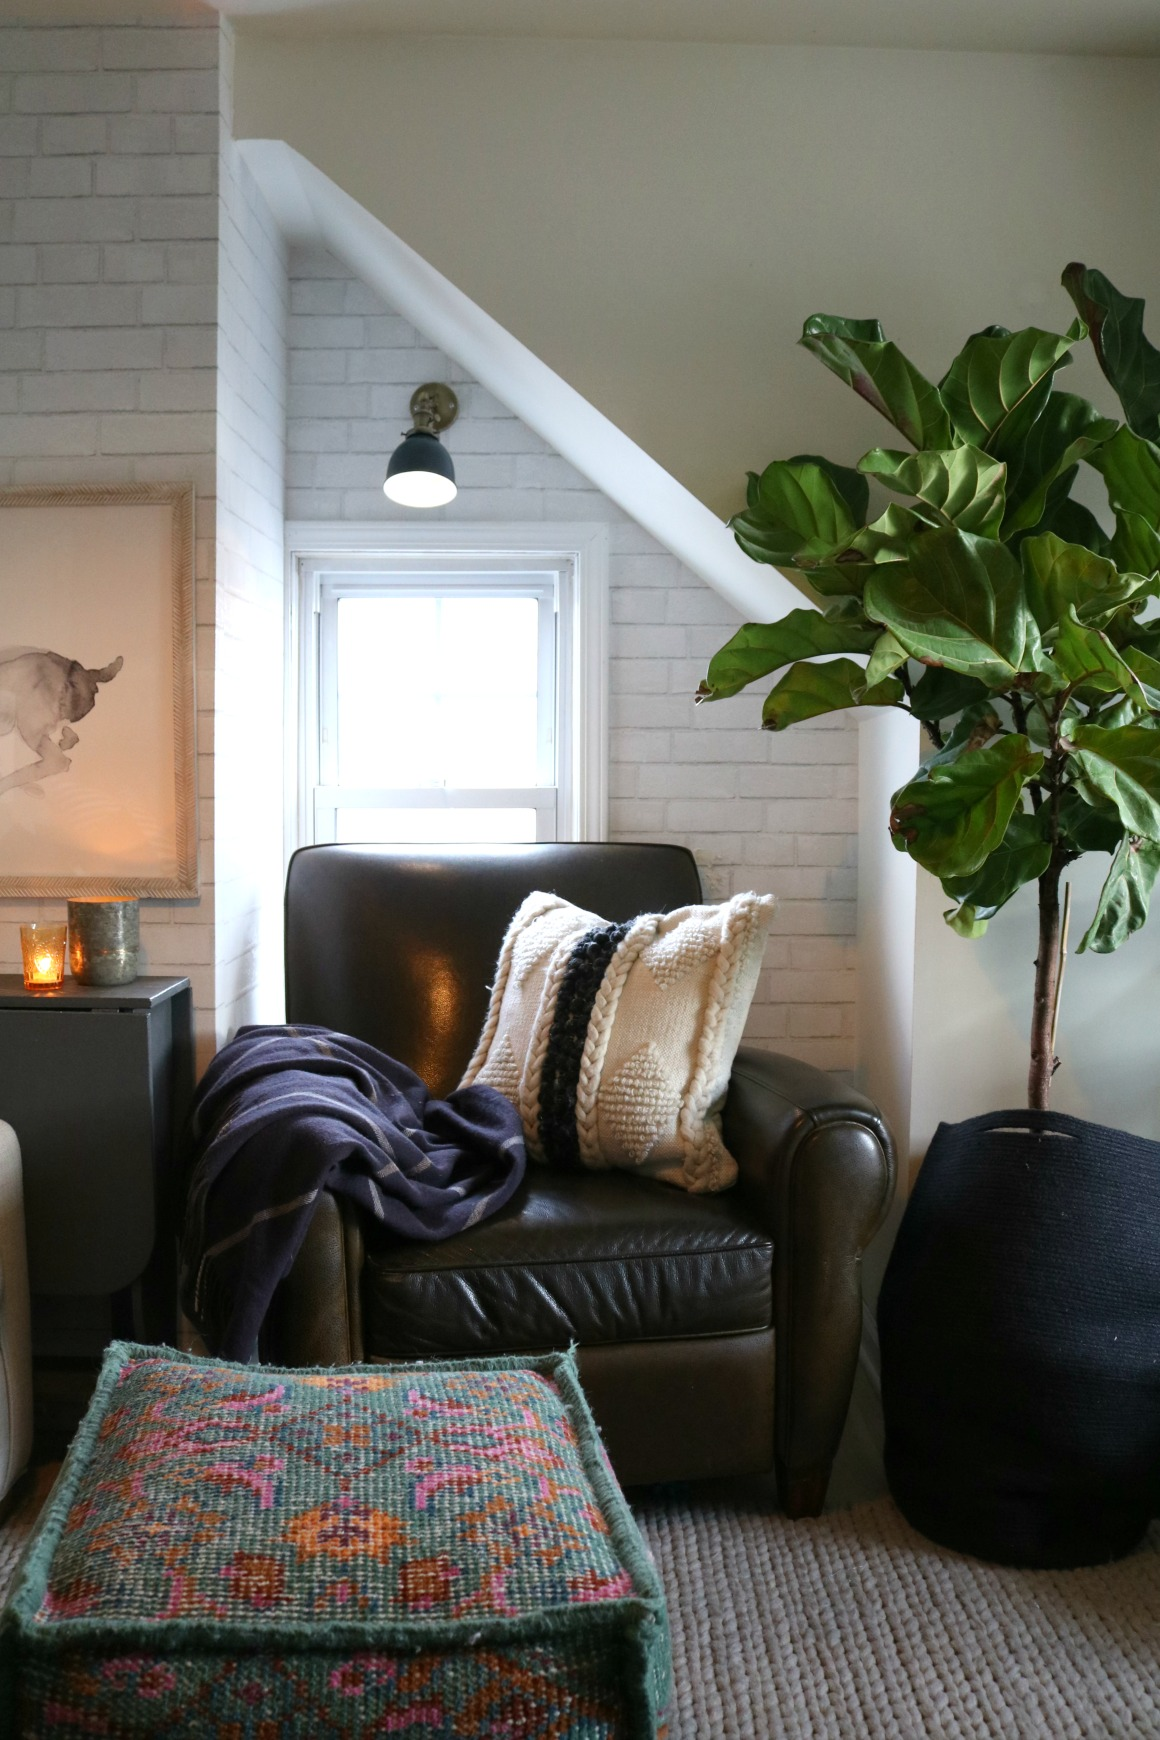 How to Keep Fiddle Leaf Figs Alive